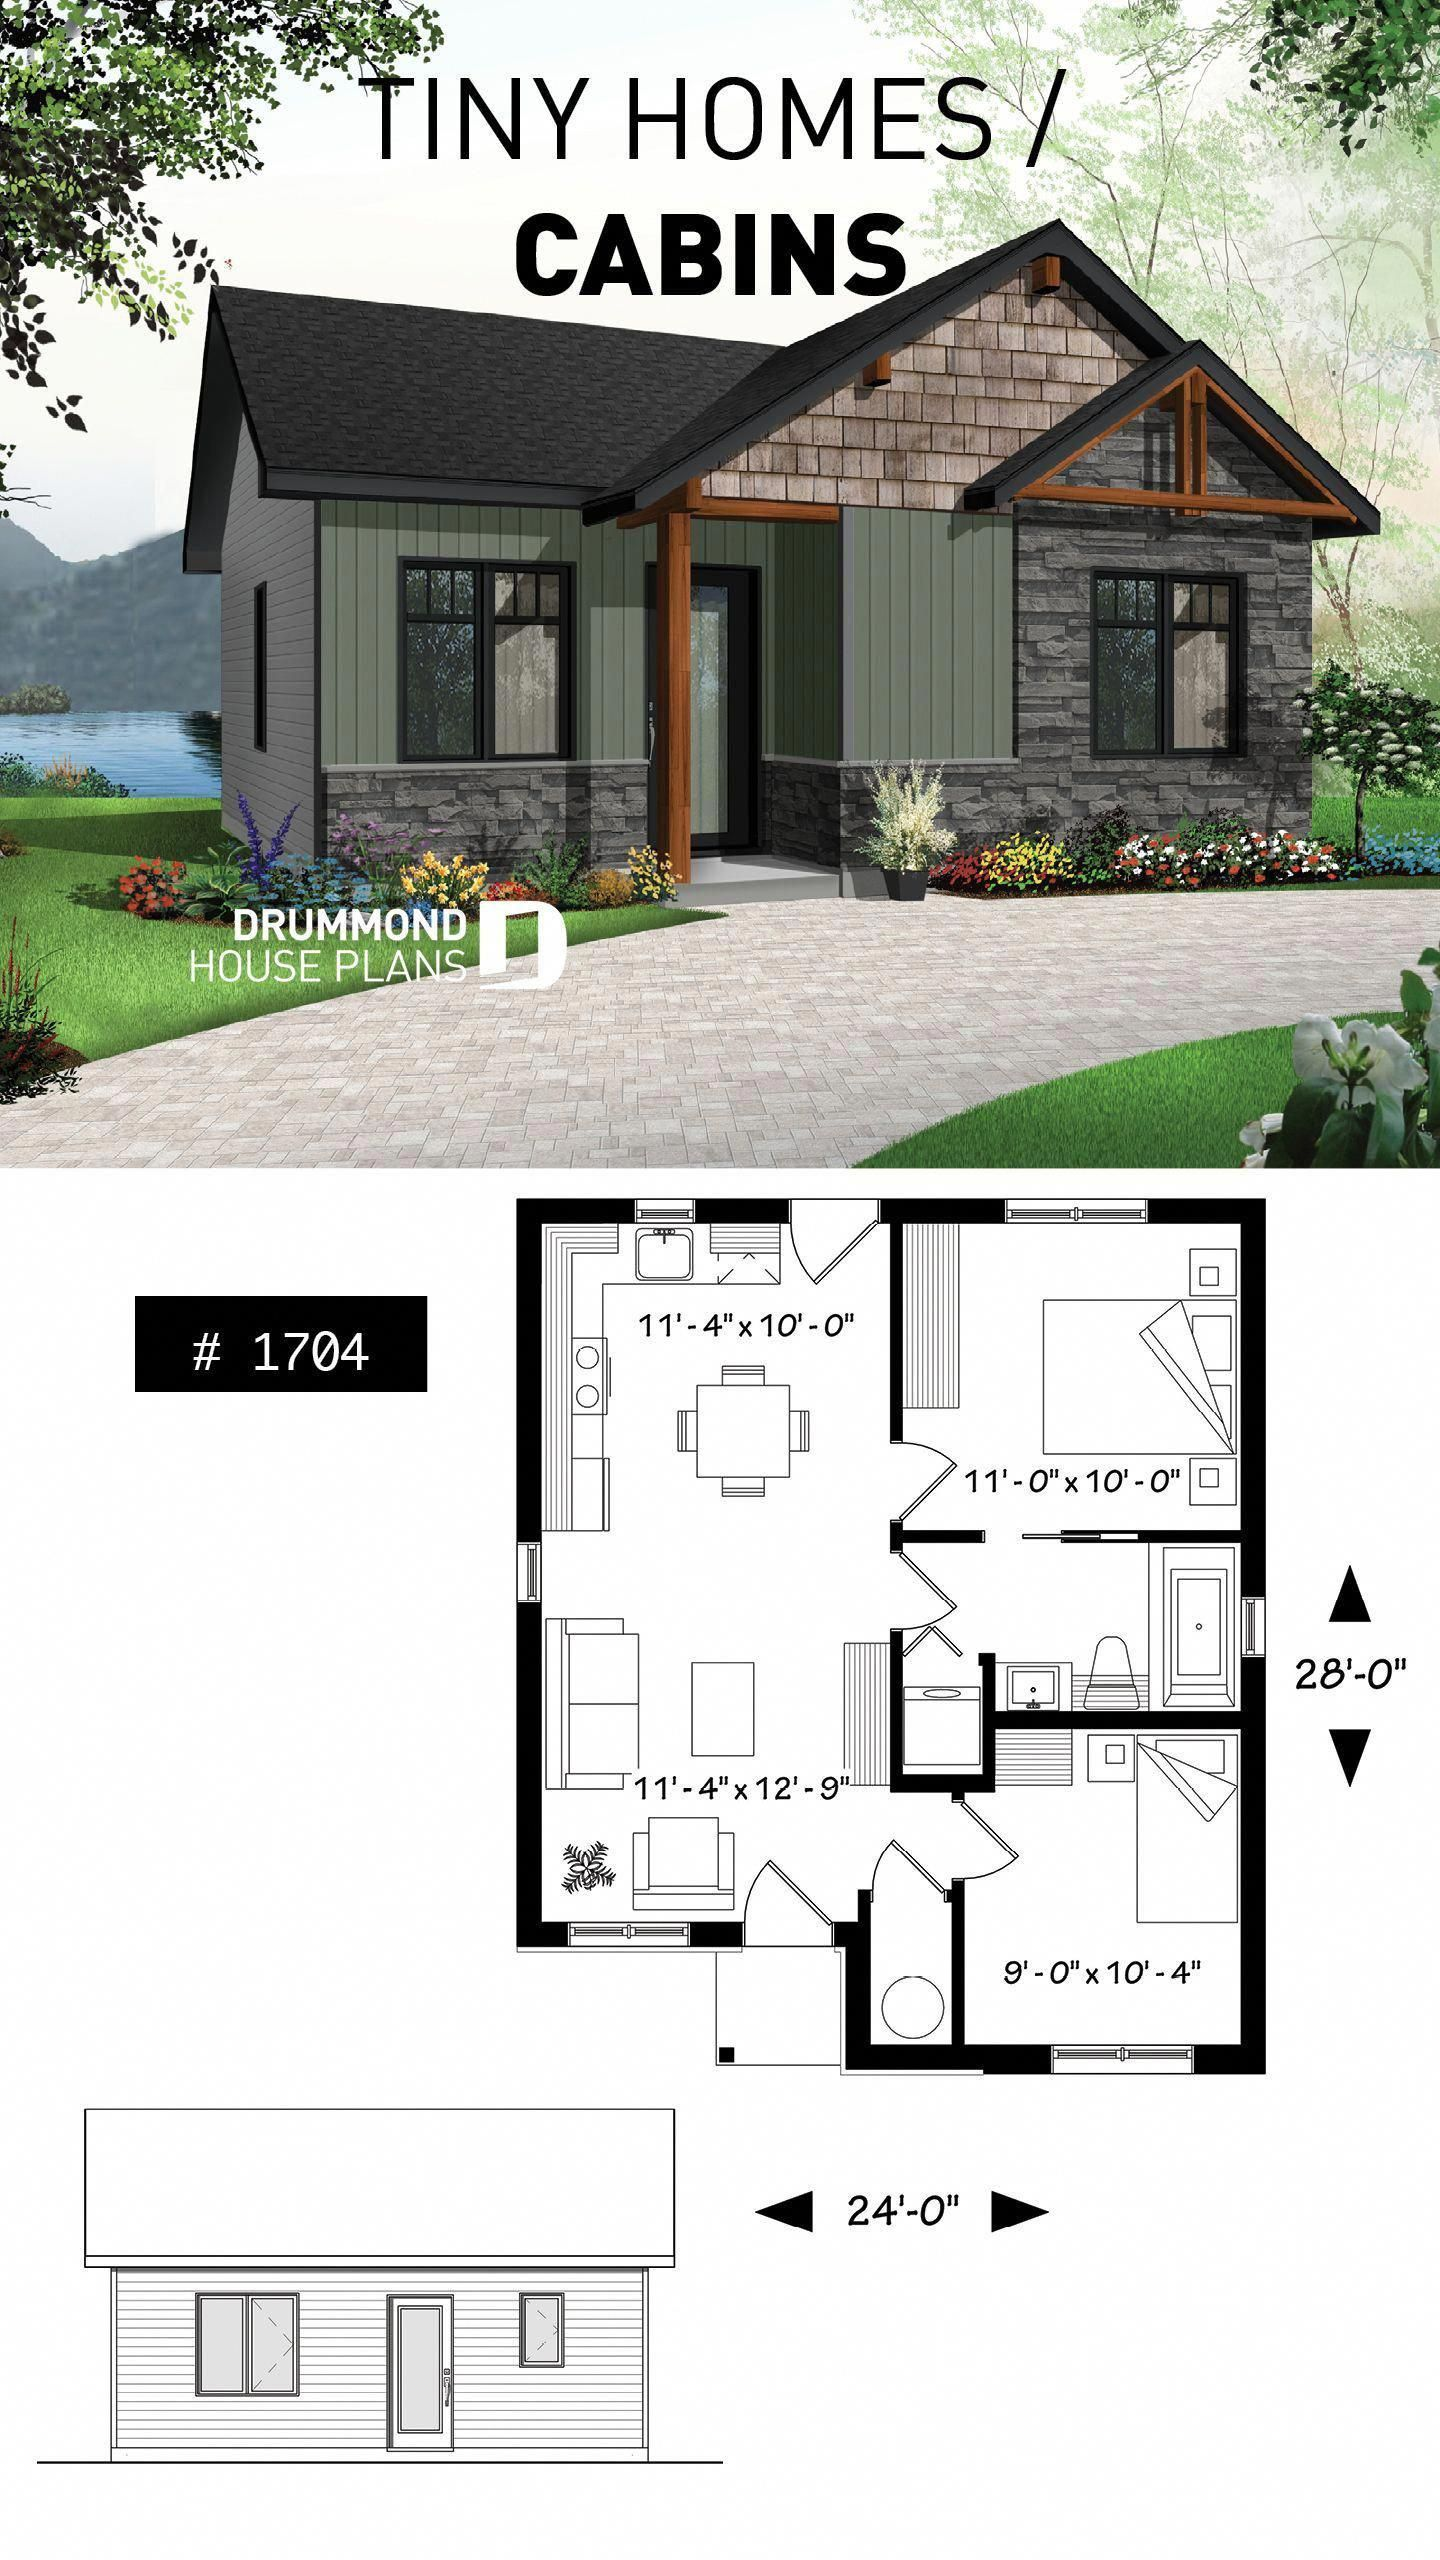 5 Free Diy Tiny House Plans To Help You Live The Small Happy Life Tinyhouse Tinylife Interiordesign Diy Tiny House Plans Cottage Plan Cottage House Plans